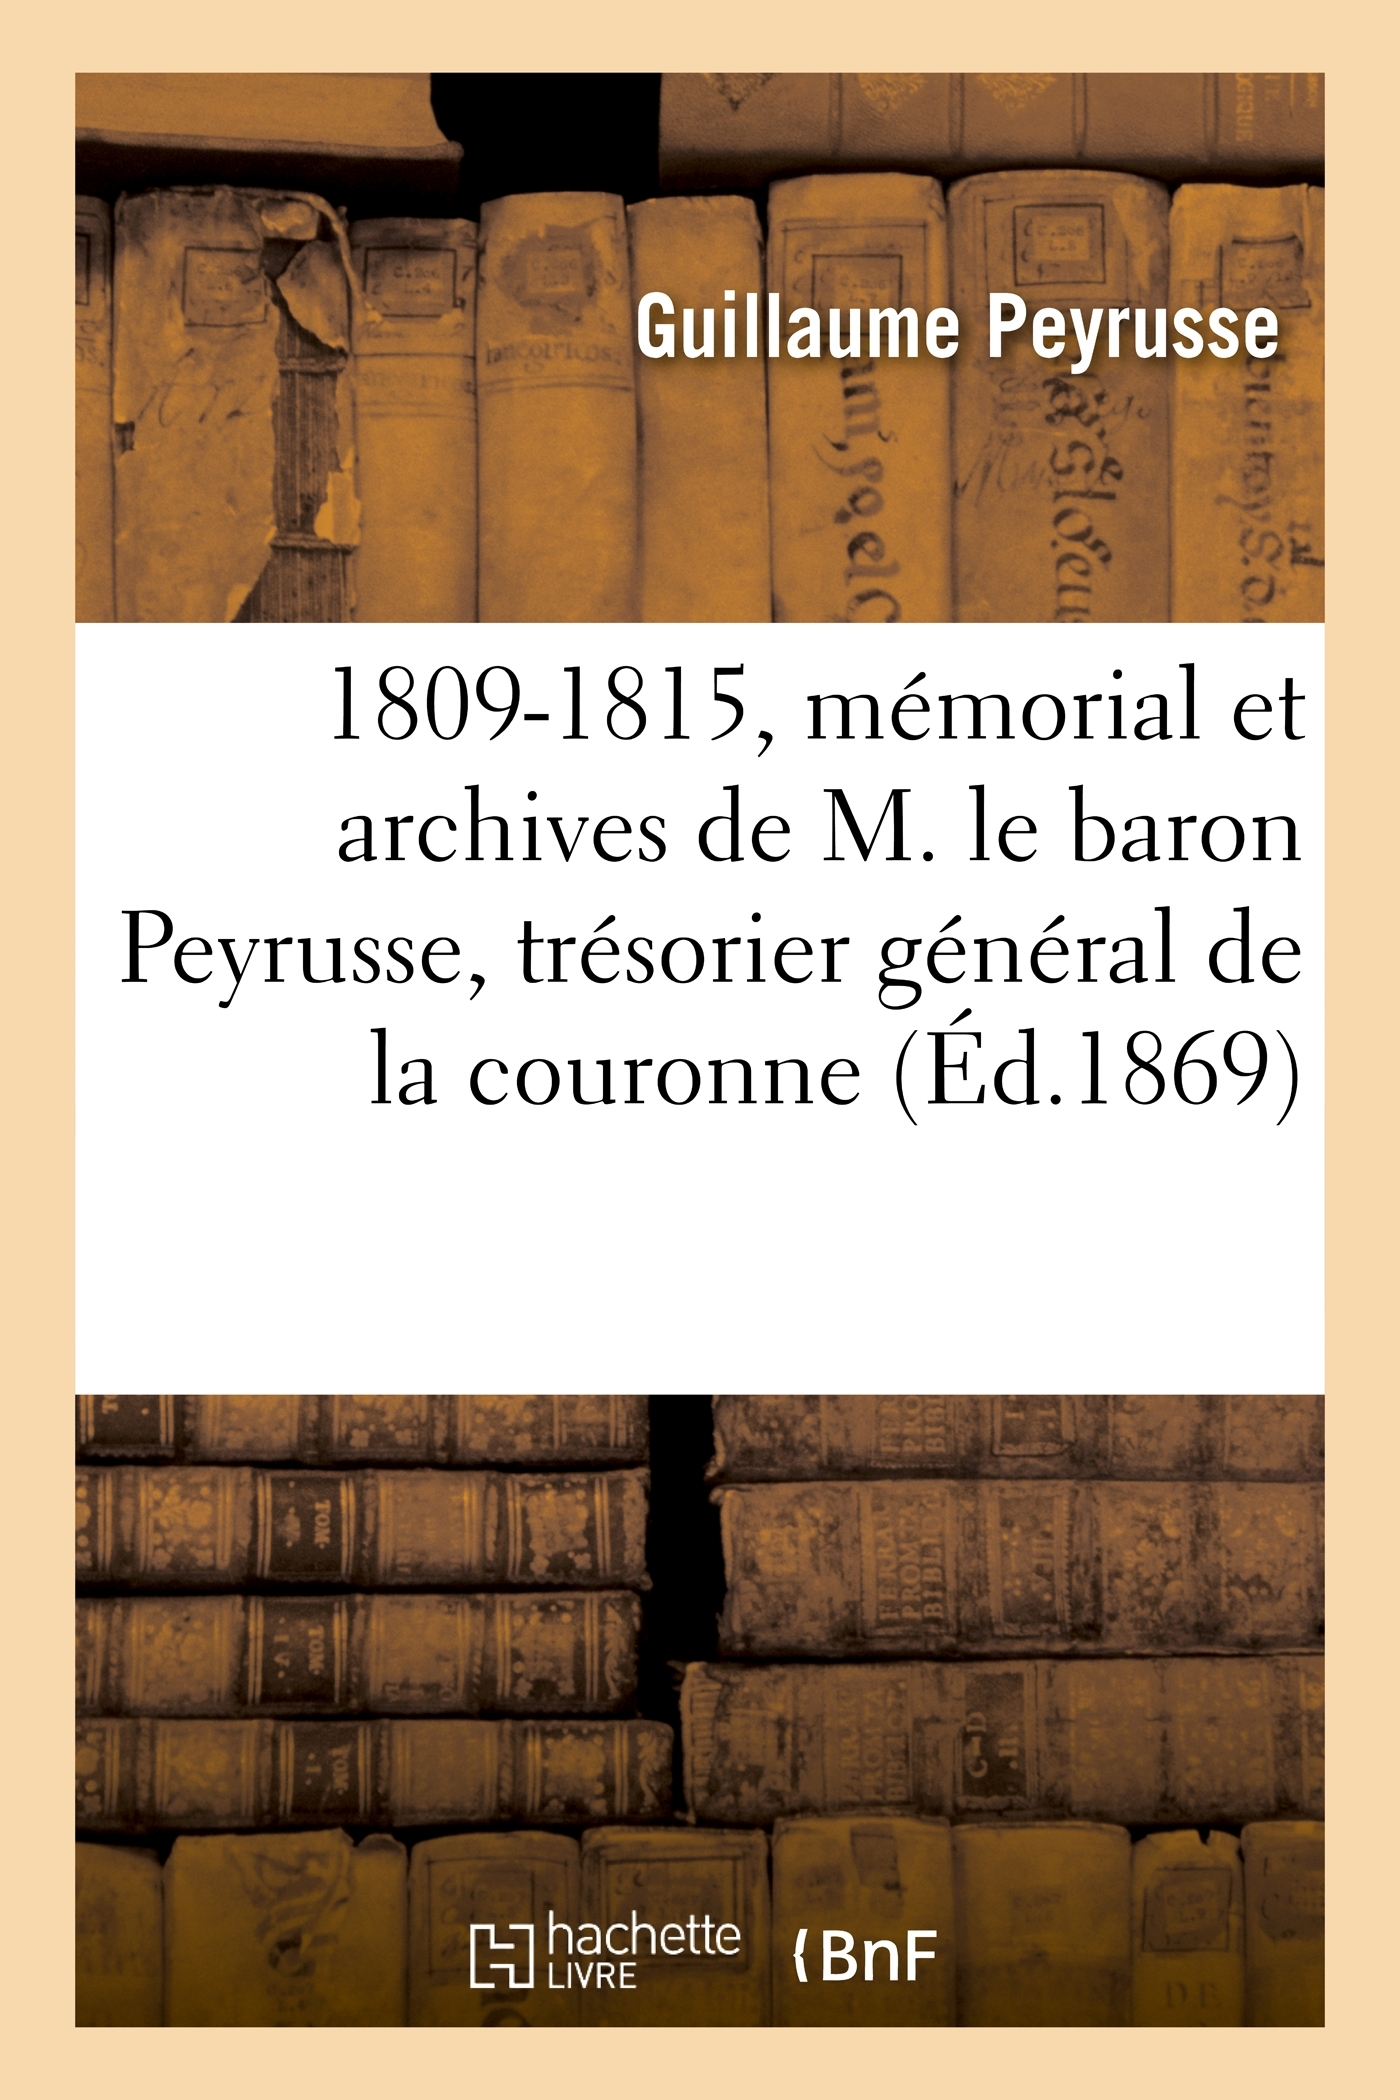 1809-1815, MEMORIAL ET ARCHIVES DE M. LE BARON PEYRUSSE, TRESORIER GENERAL DE LA COURONNE